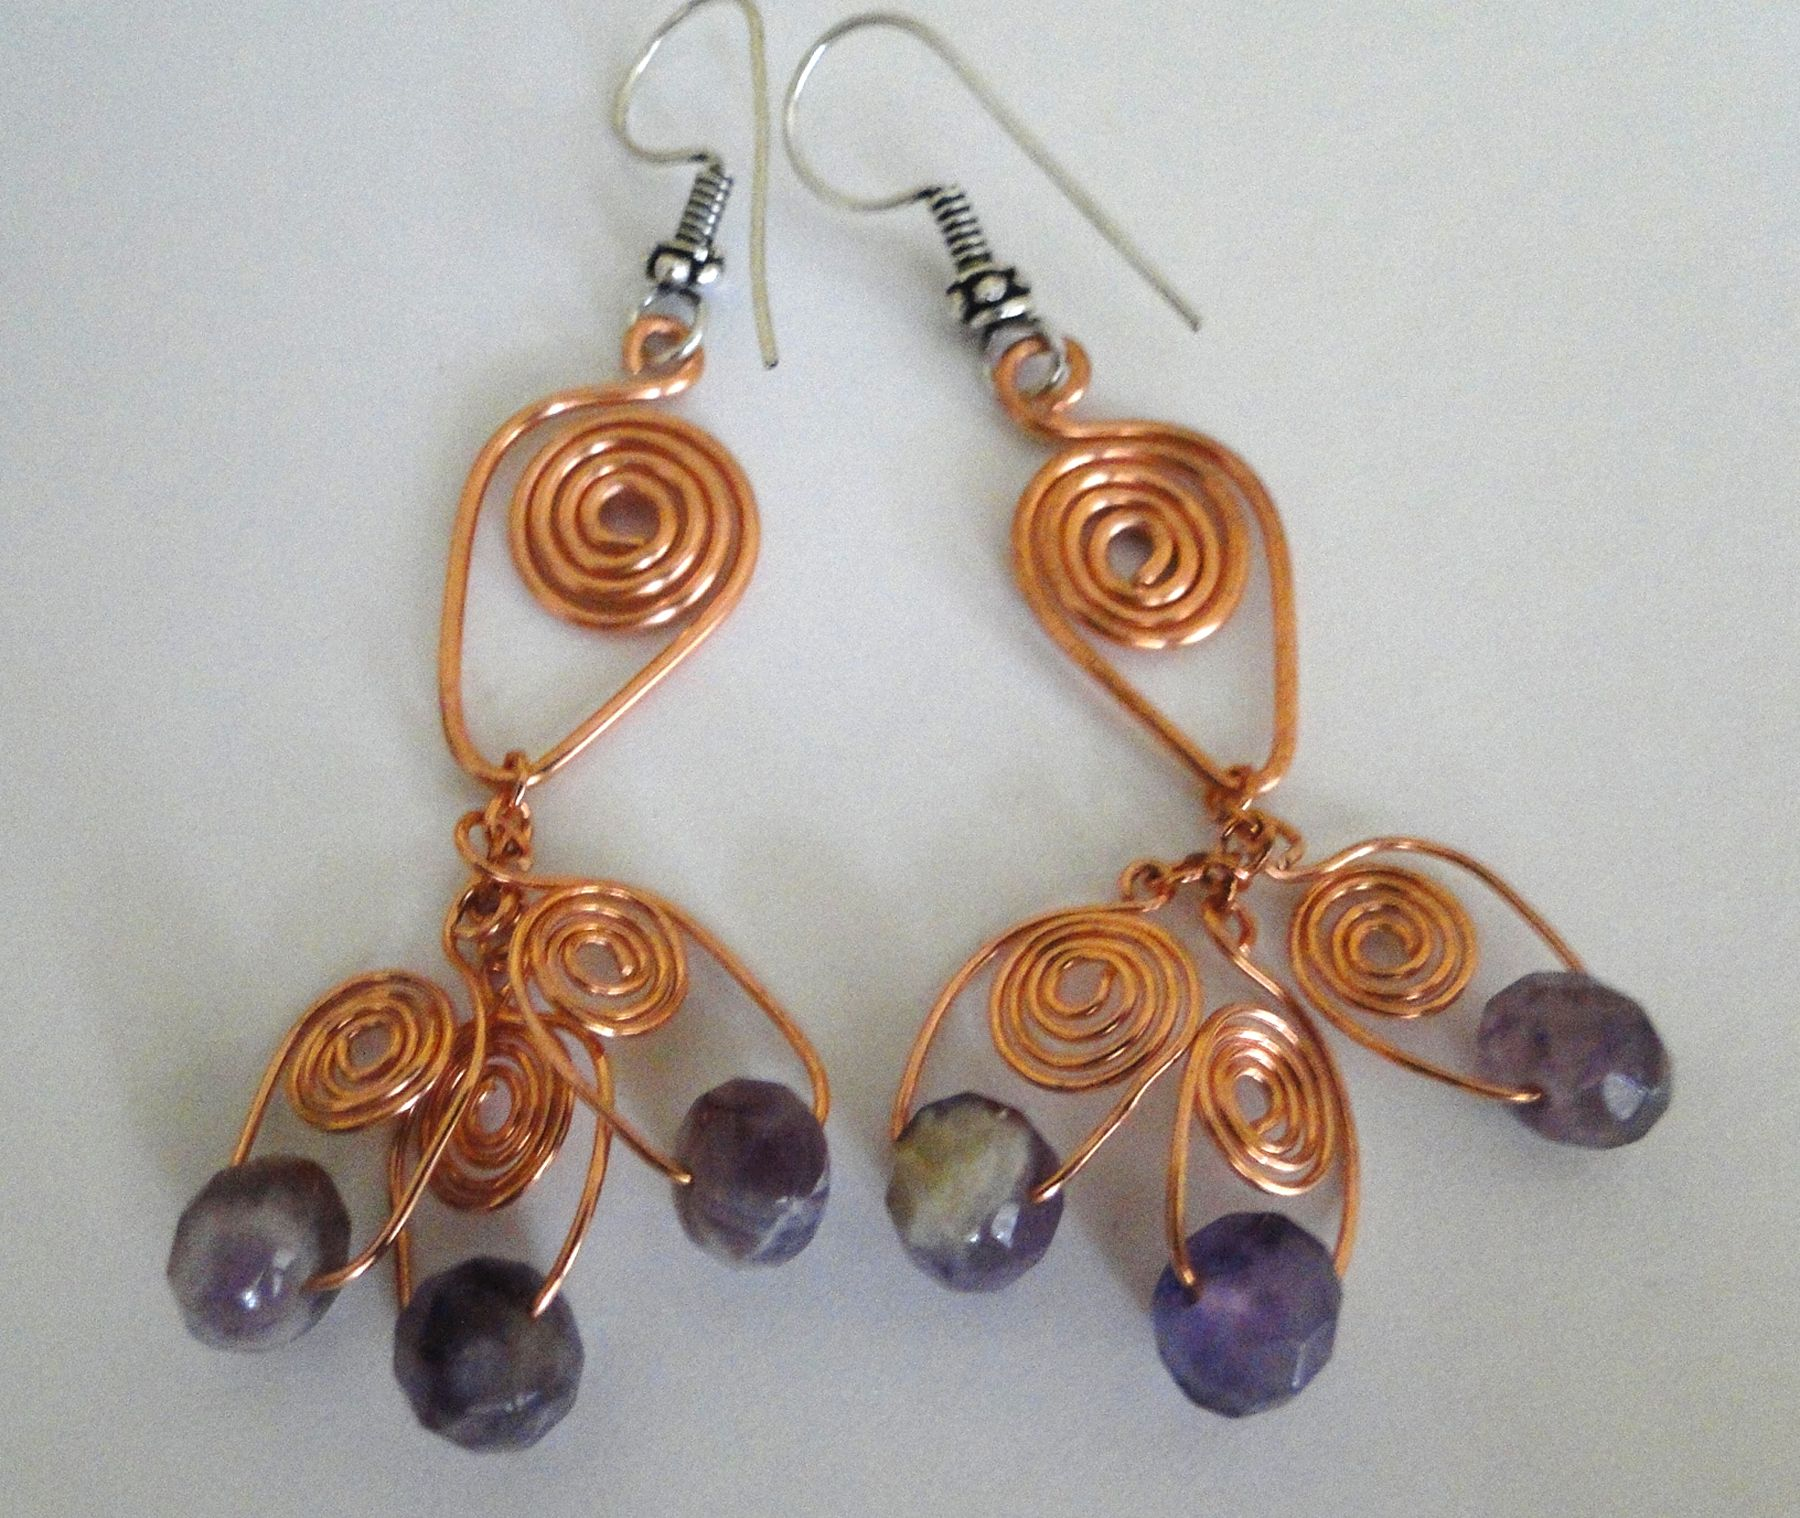 Phenomenal Wire Spiral Earrings Tutorial From Wire Sculpture Wire Earrings Wiring Cloud Hisonuggs Outletorg